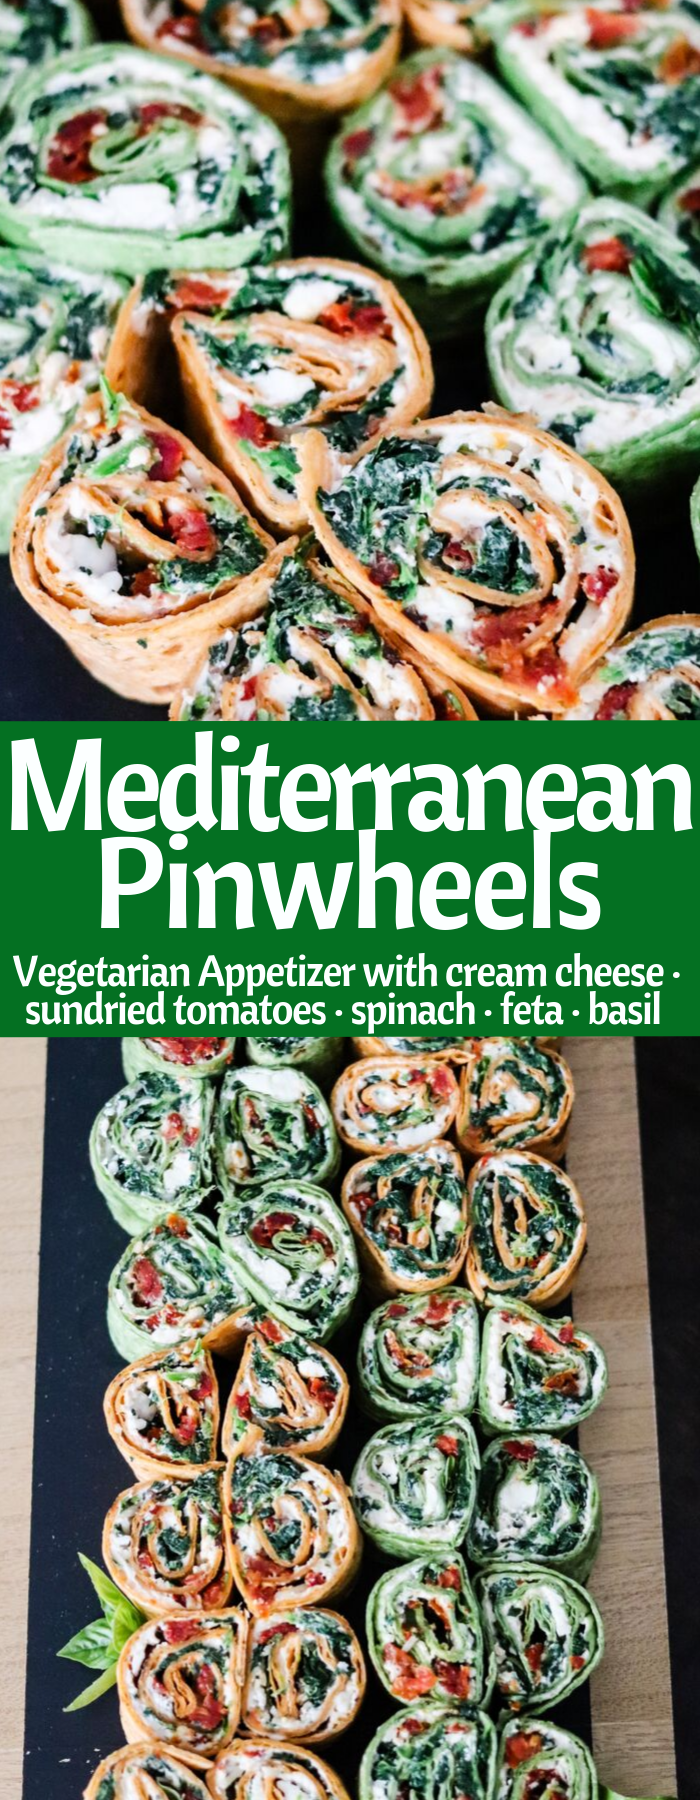 Mediterranean Pinwheels are an easy vegetarian appetizer! Stuffed with 3 cheeses, spinach, sun-dried tomatoes, and fresh basil, they are a HUGE crowd pleaser! - AMAZING RECIPE!!!!